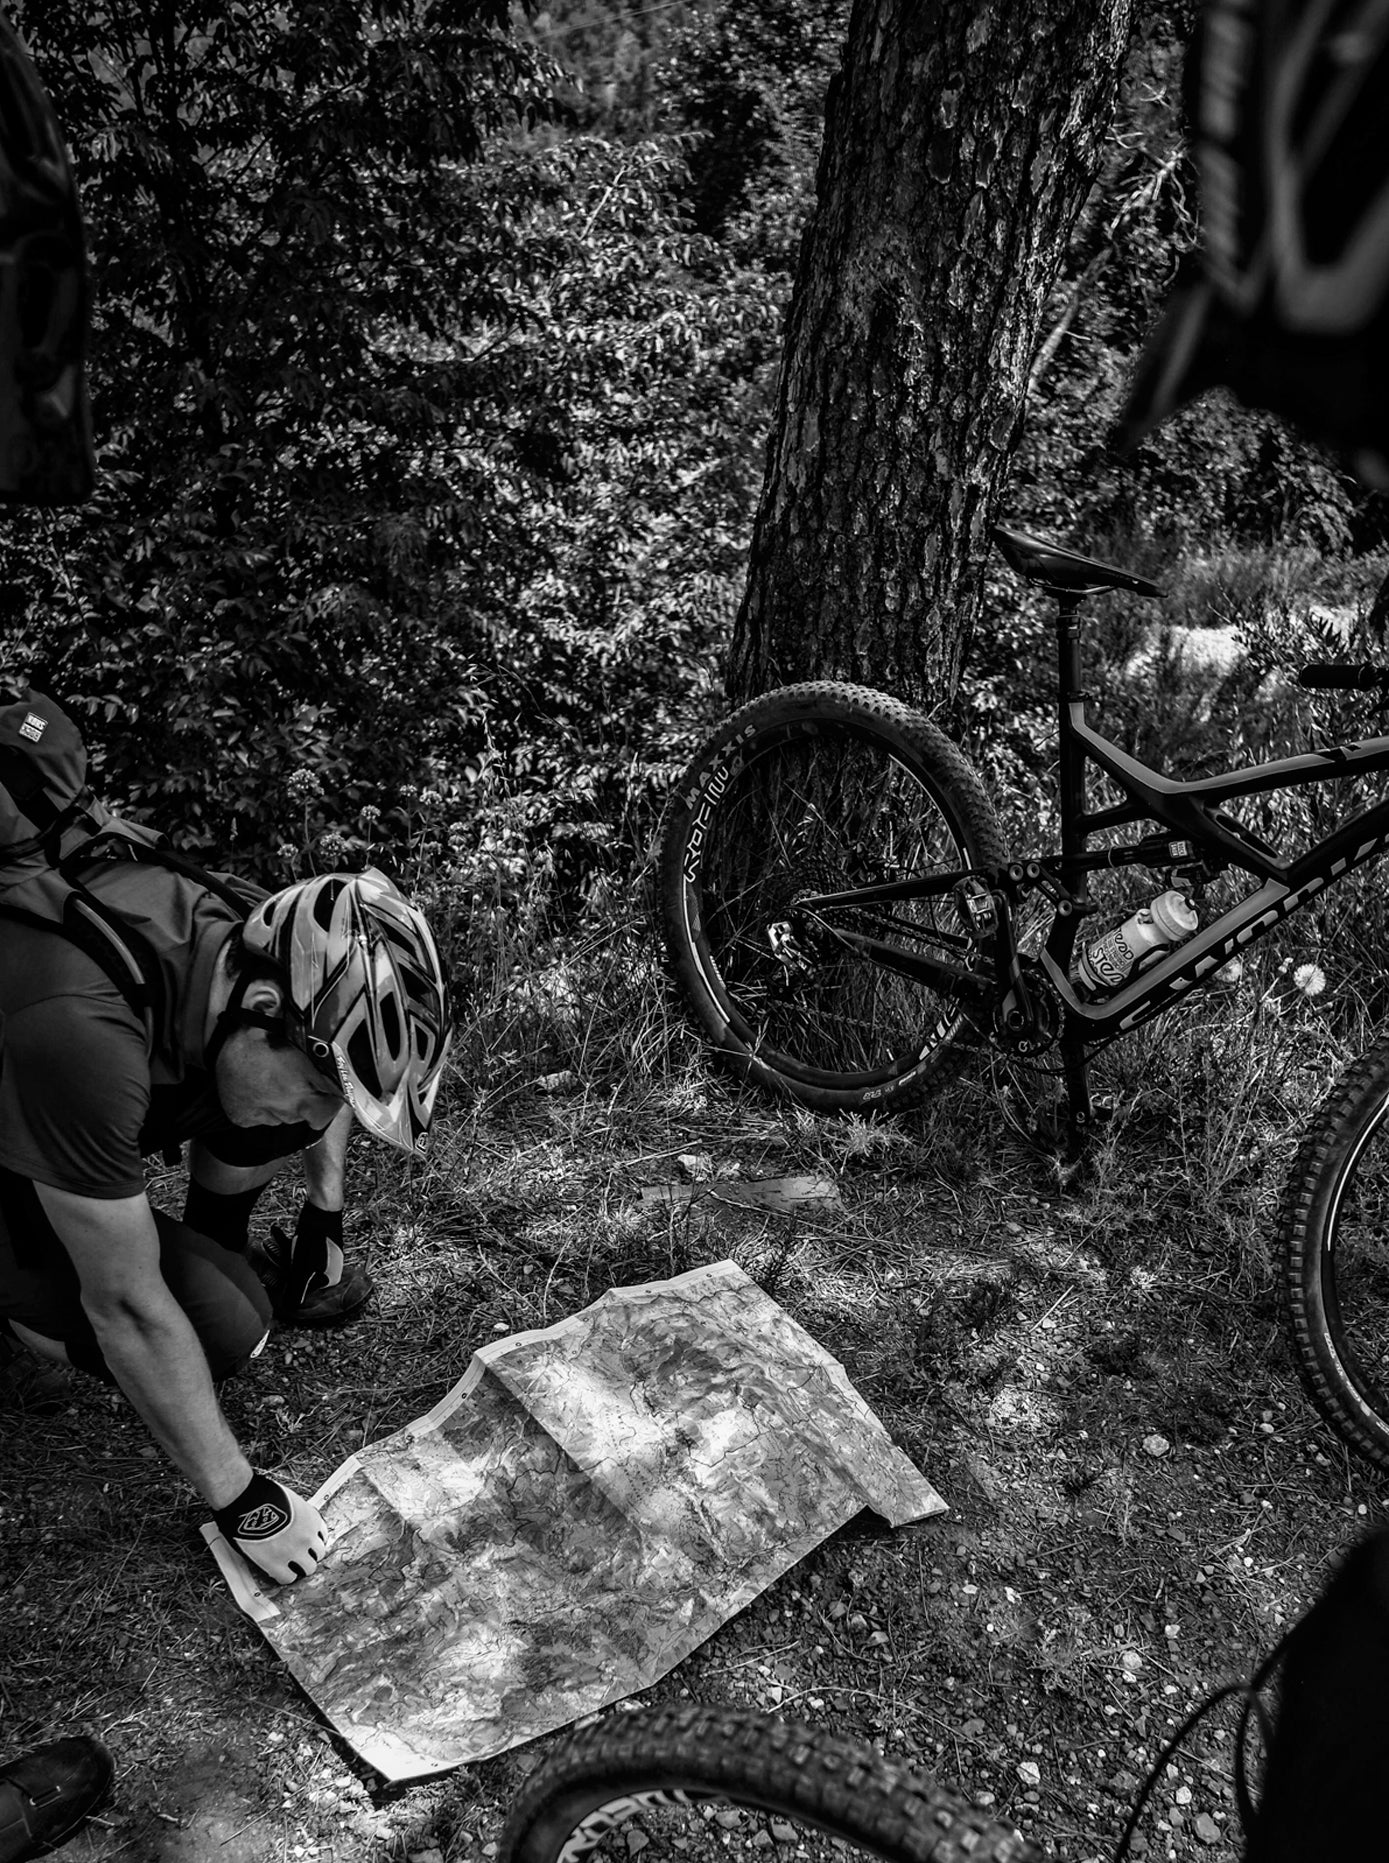 Mission Workshop Field Test : The Guide to Getting Lost - Summer 2014 - Mountain Bike Ride with SRAM, Golden Saddle Cyclery, Santa Cruz Bicycles, Sospel MTB, and John Prolly at The Radavist